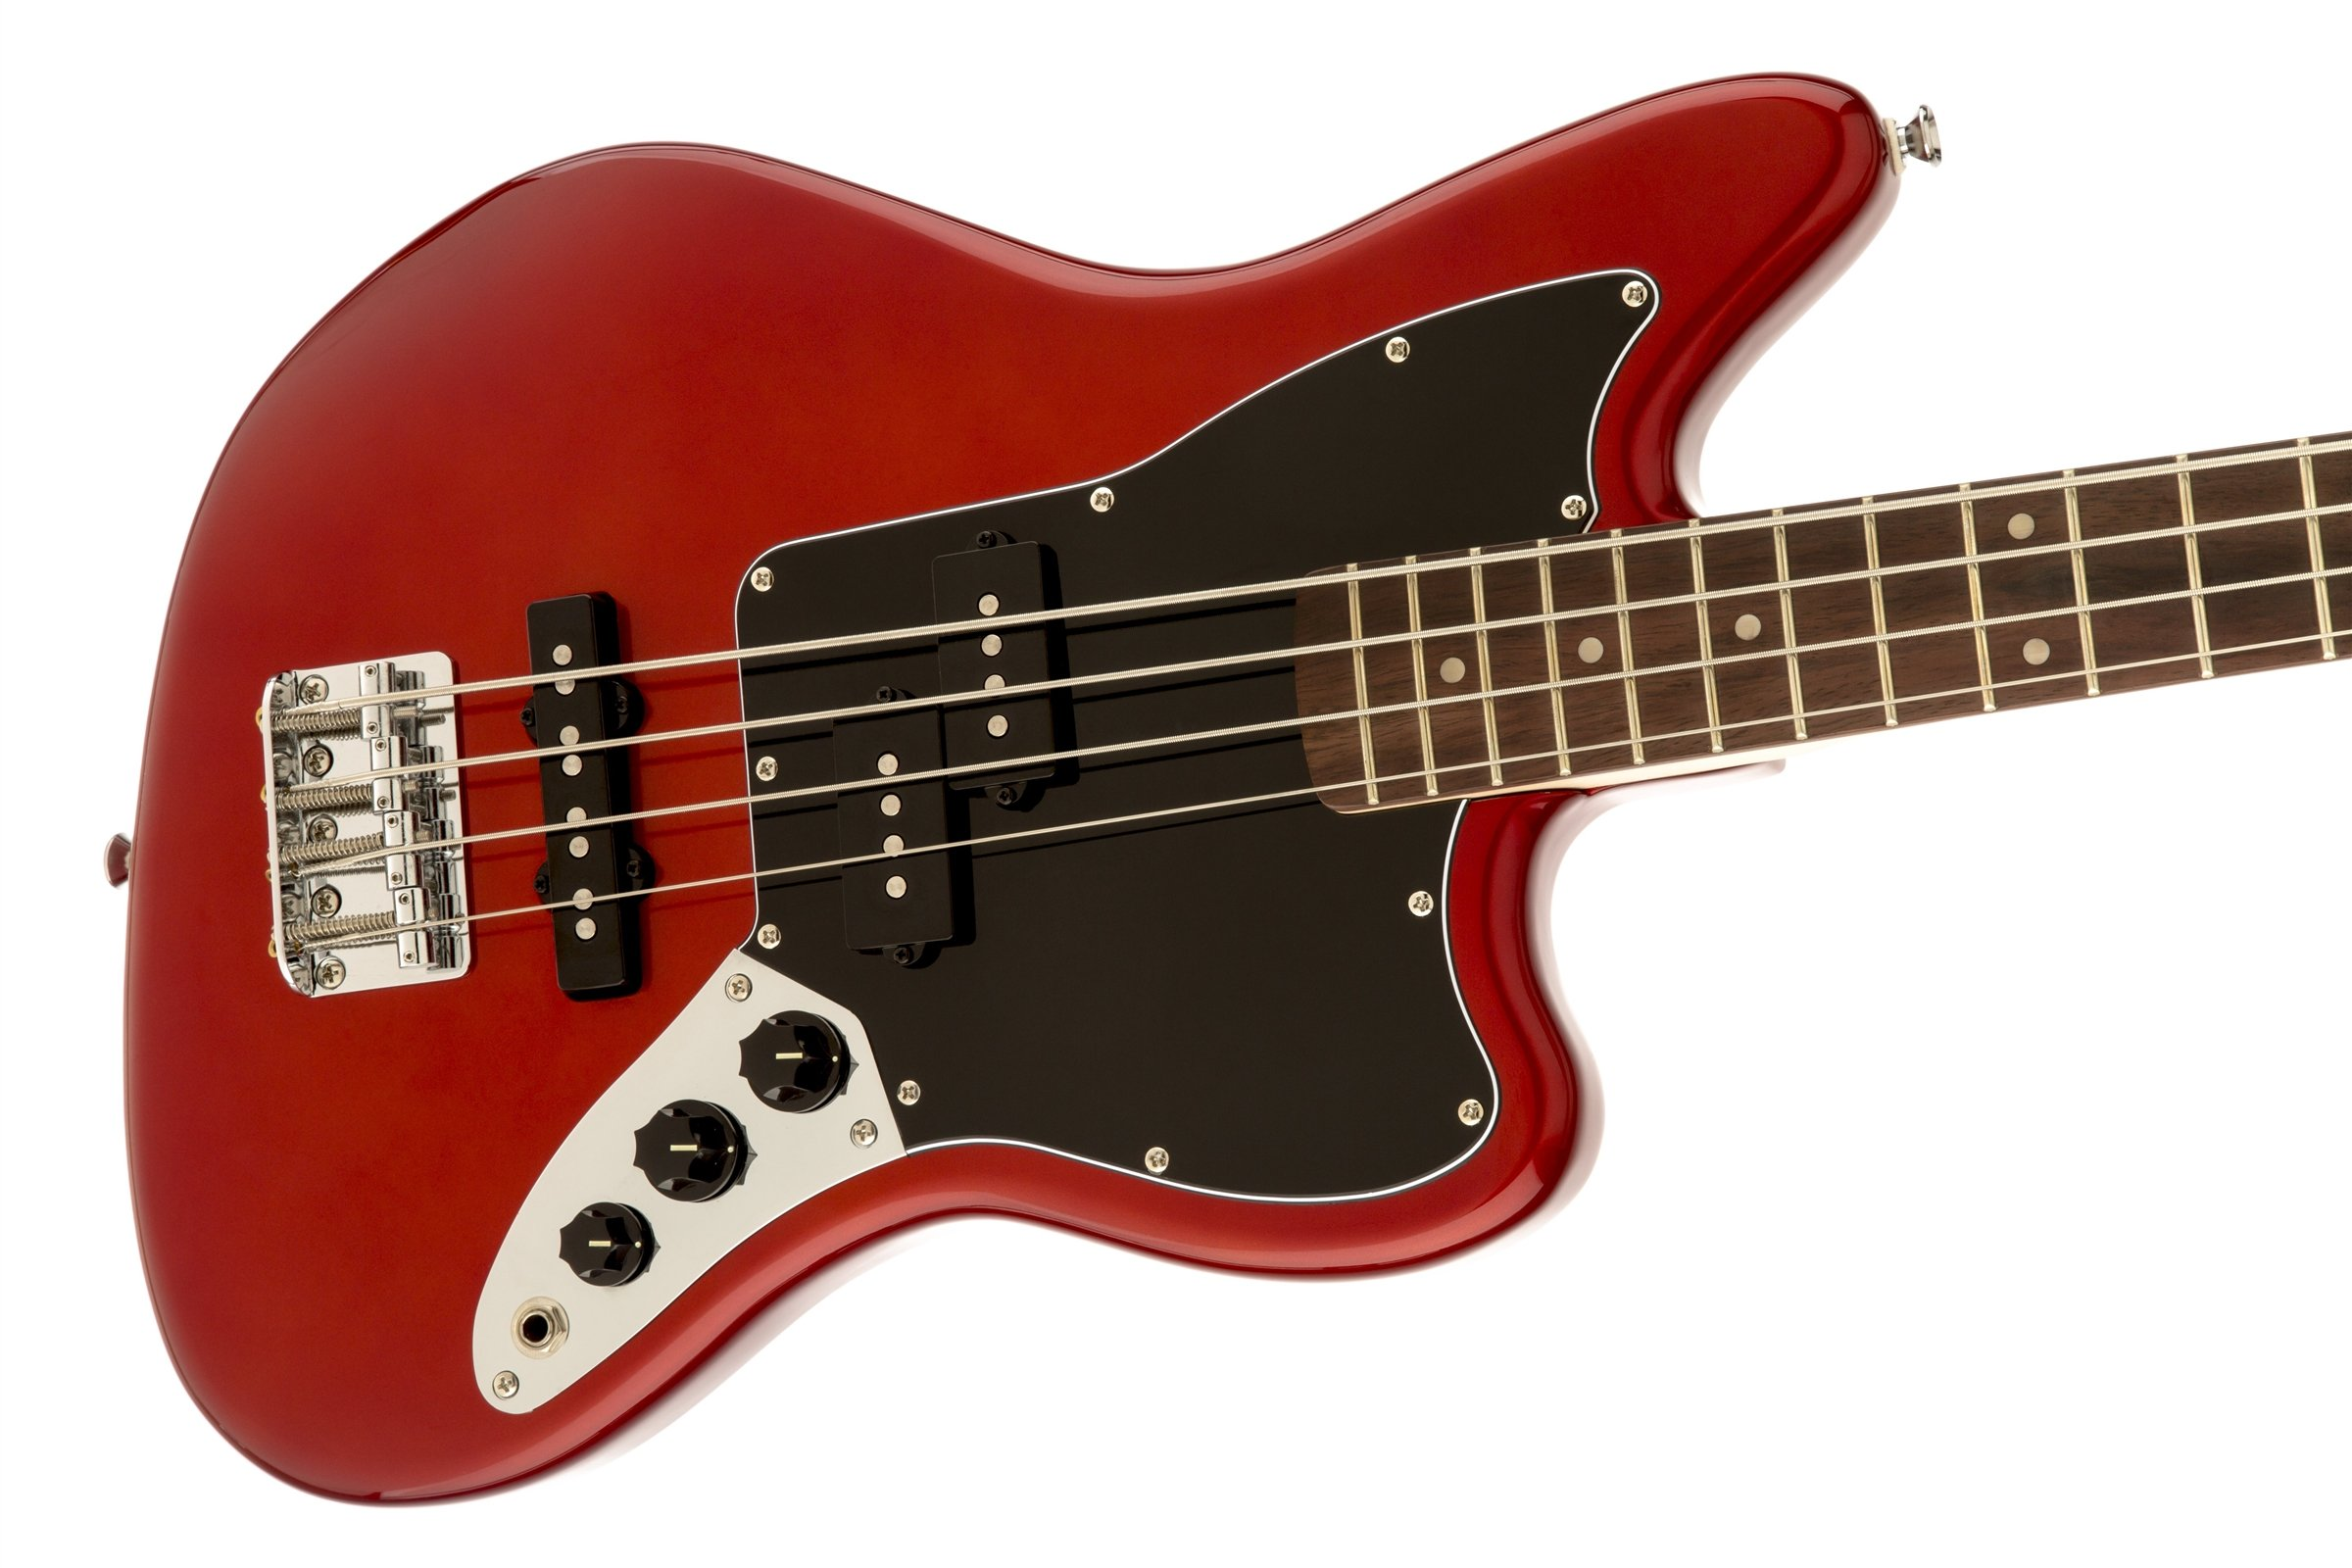 Buy Vintage Bass Guitar Now!